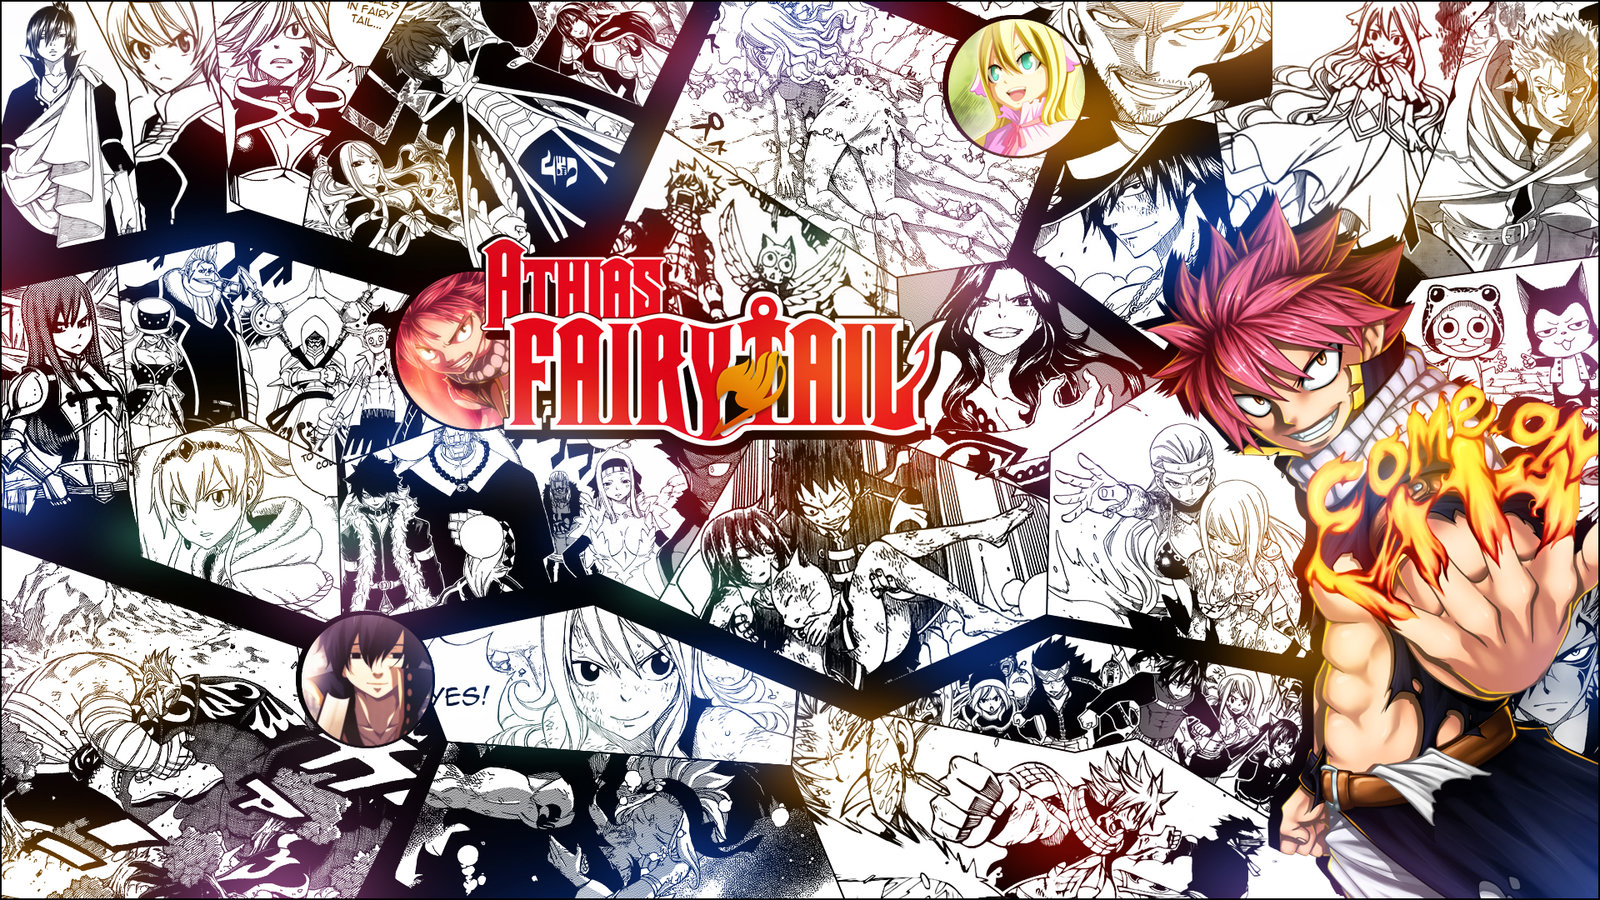 Download Fairy Tail HD Wallpapers for BsnSCBcom 1600x900